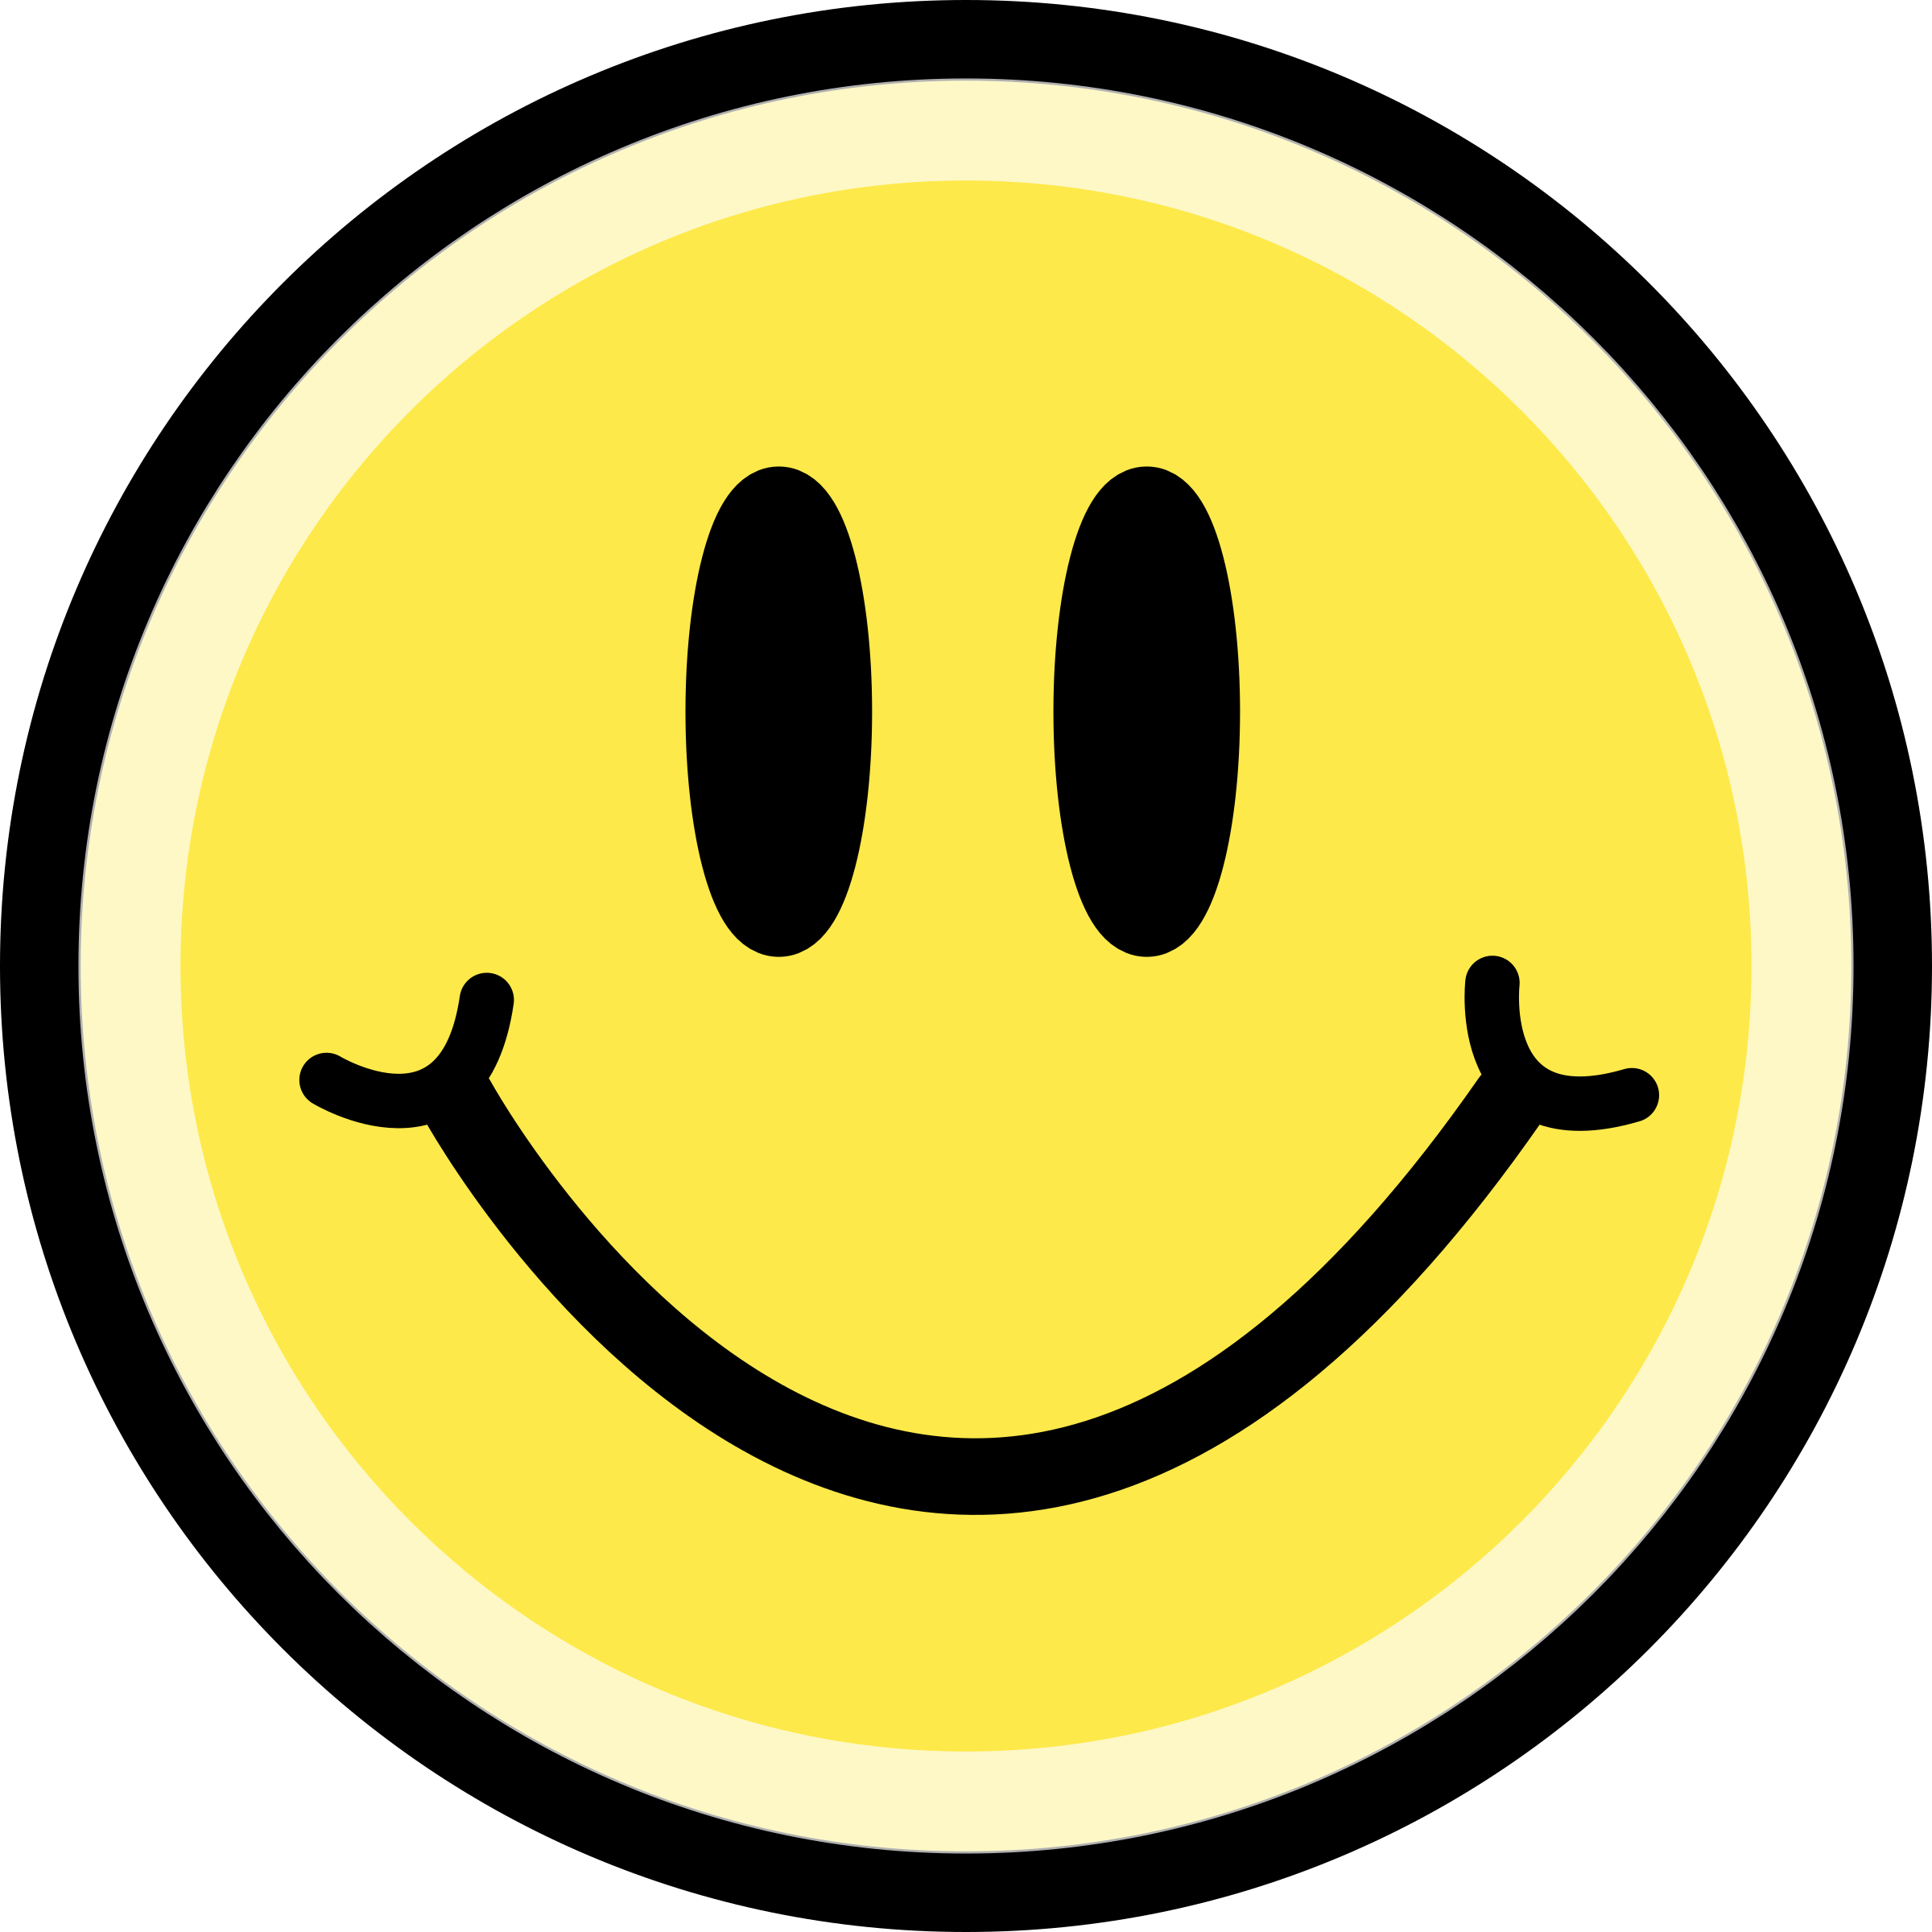 Clipart yellow big image. Smiley face clip art emoticon